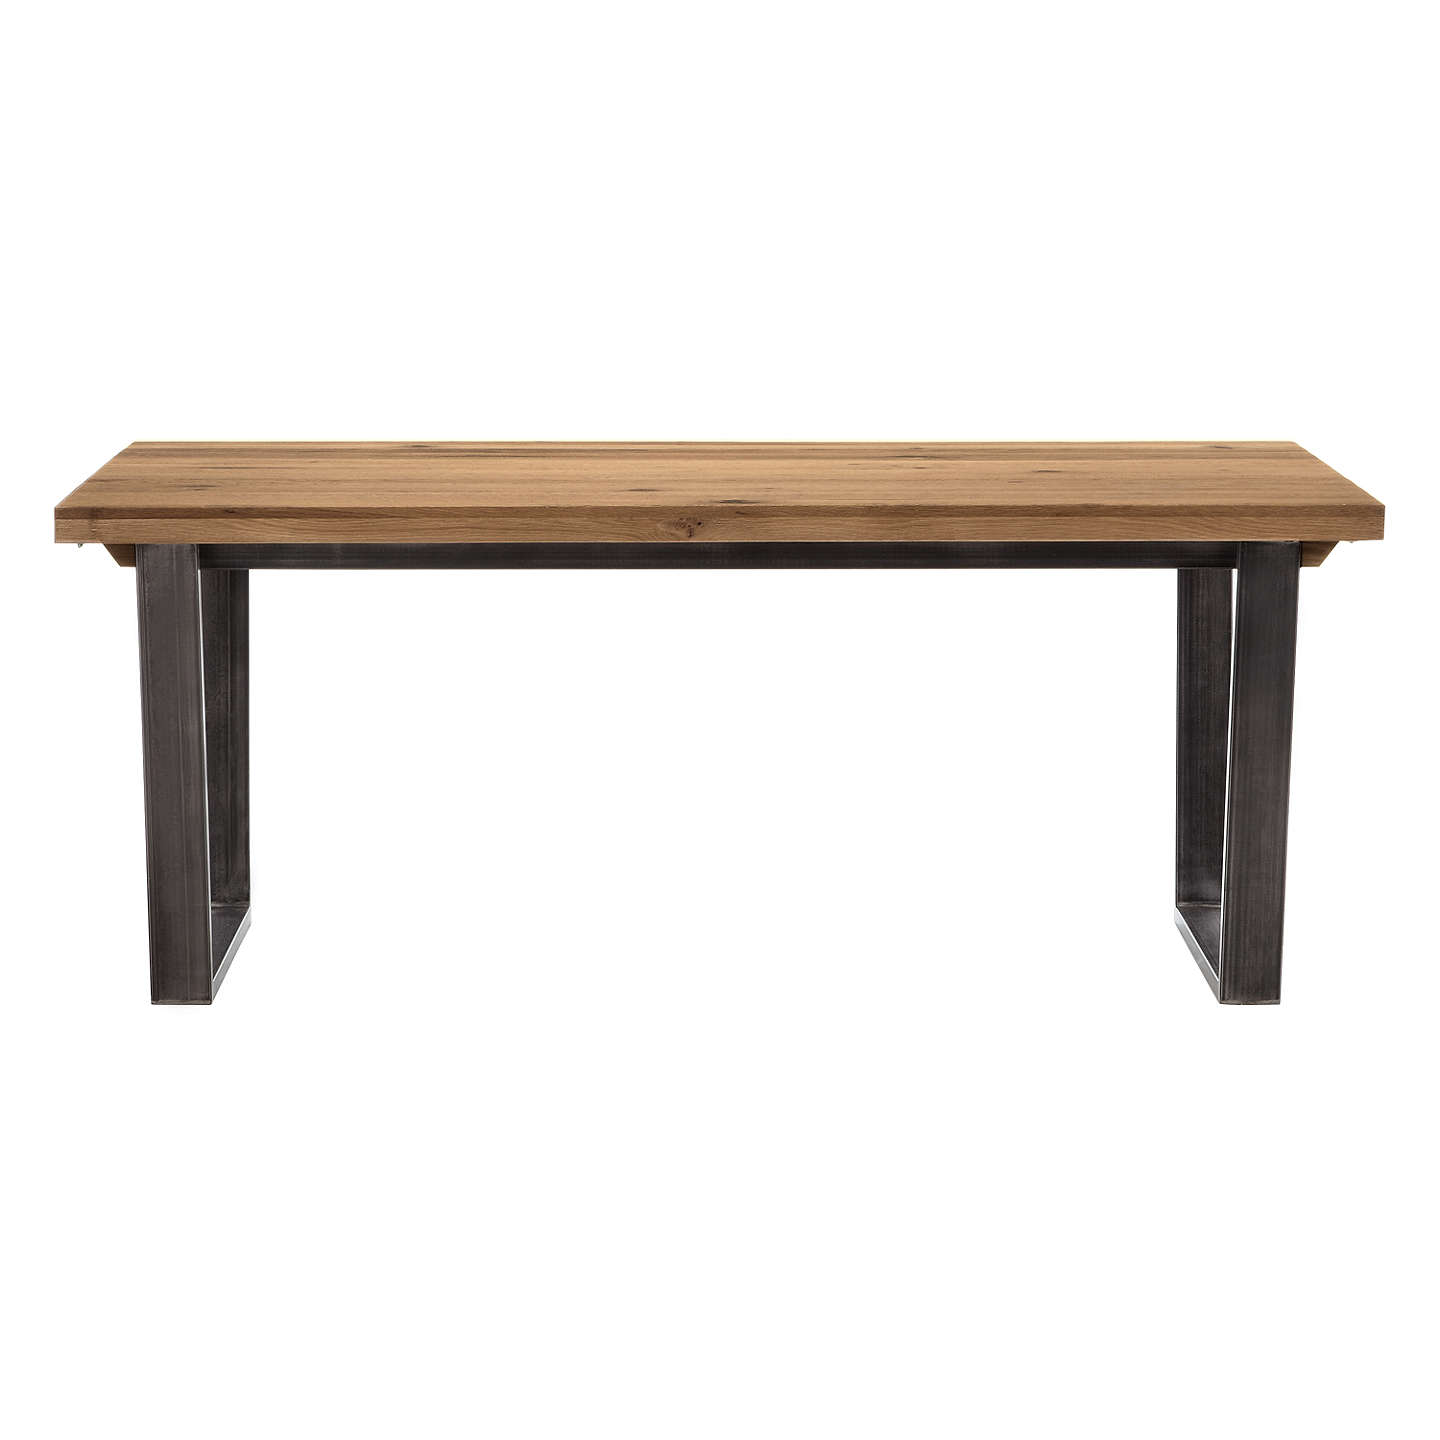 BuyJohn Lewis Calia 8-12 Seater Extending Dining Table, Oak Online at johnlewis.com